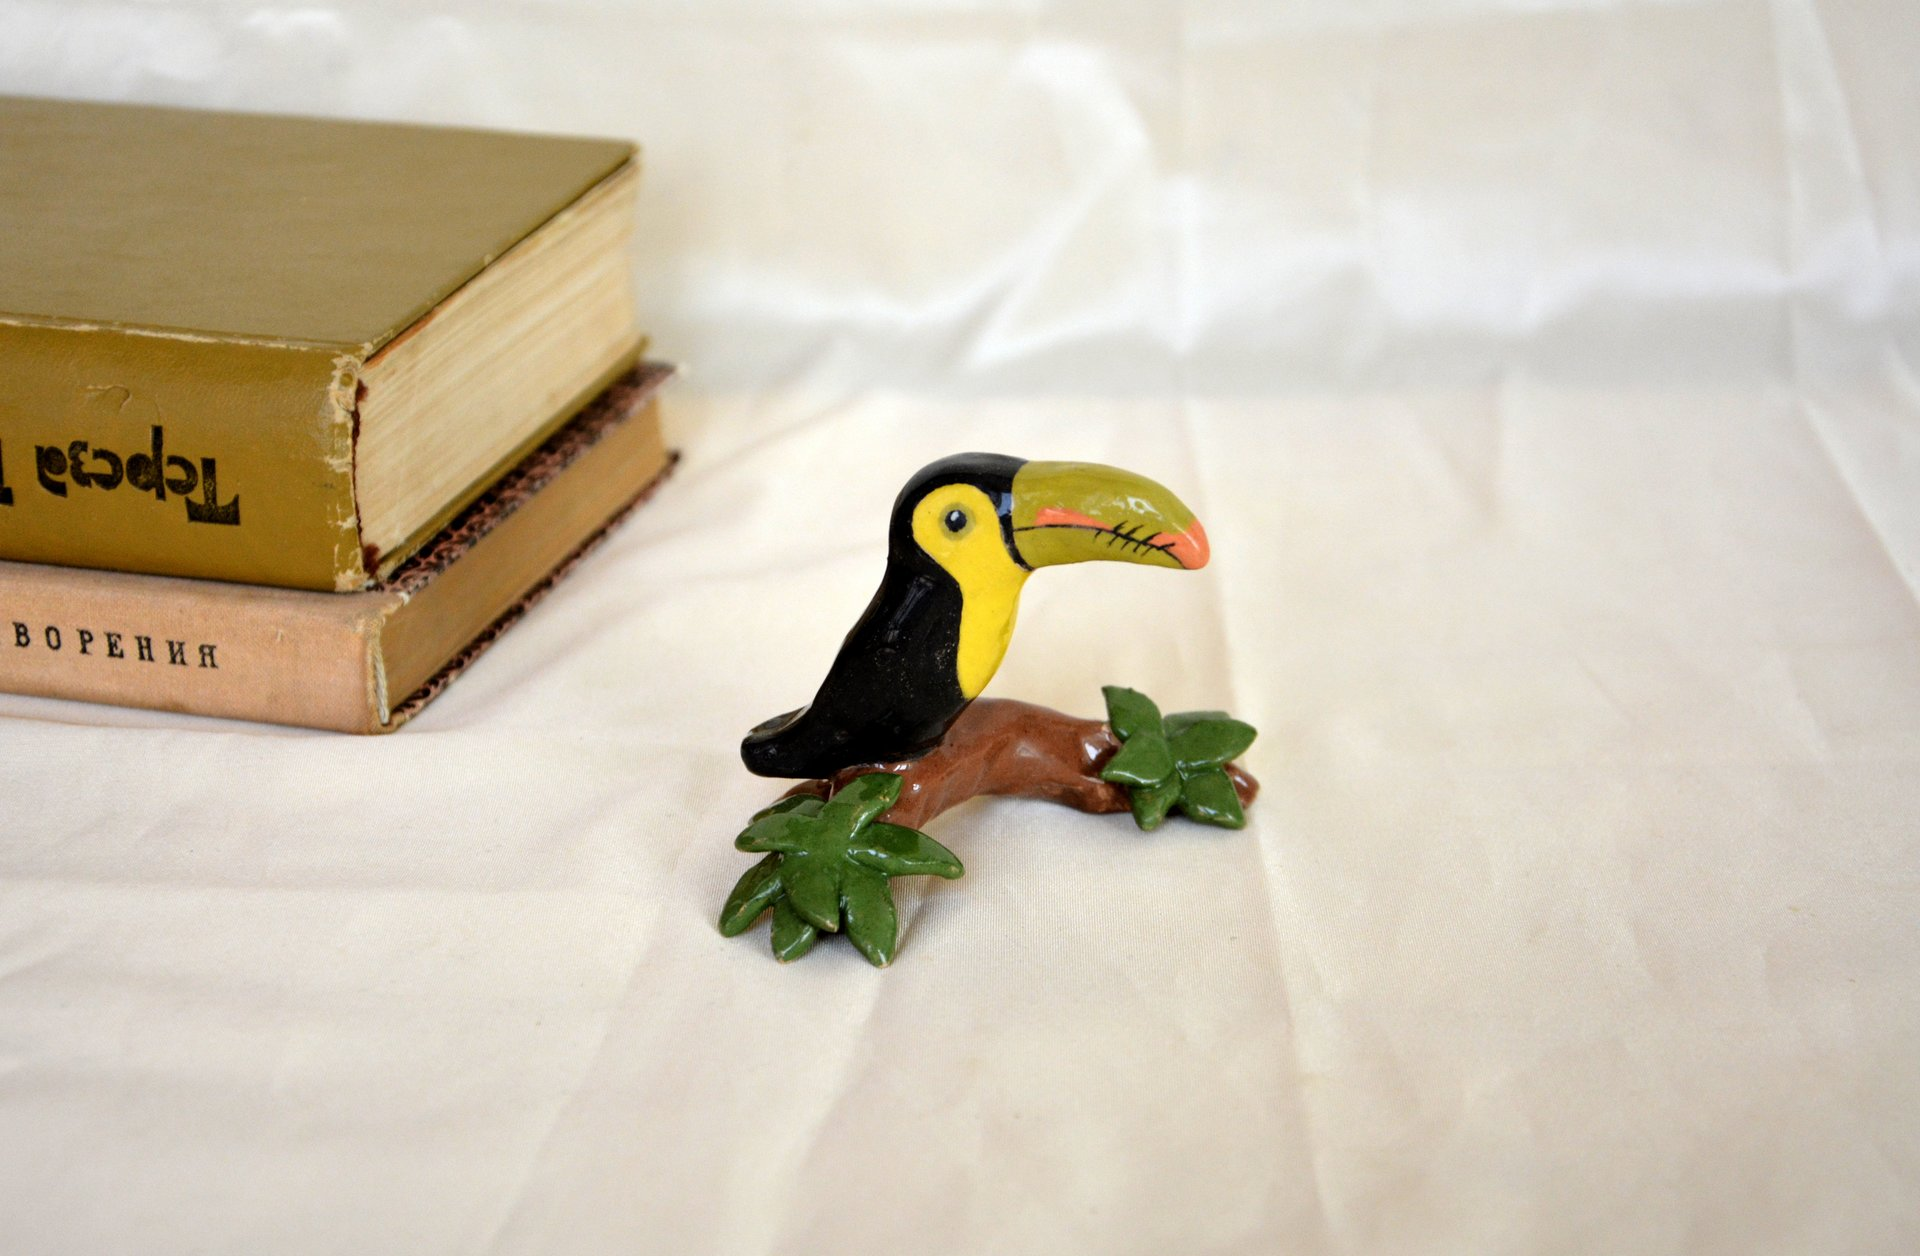 Statuette Toucan - Animals and birds, height - 5 cm, photo 1 of 1.